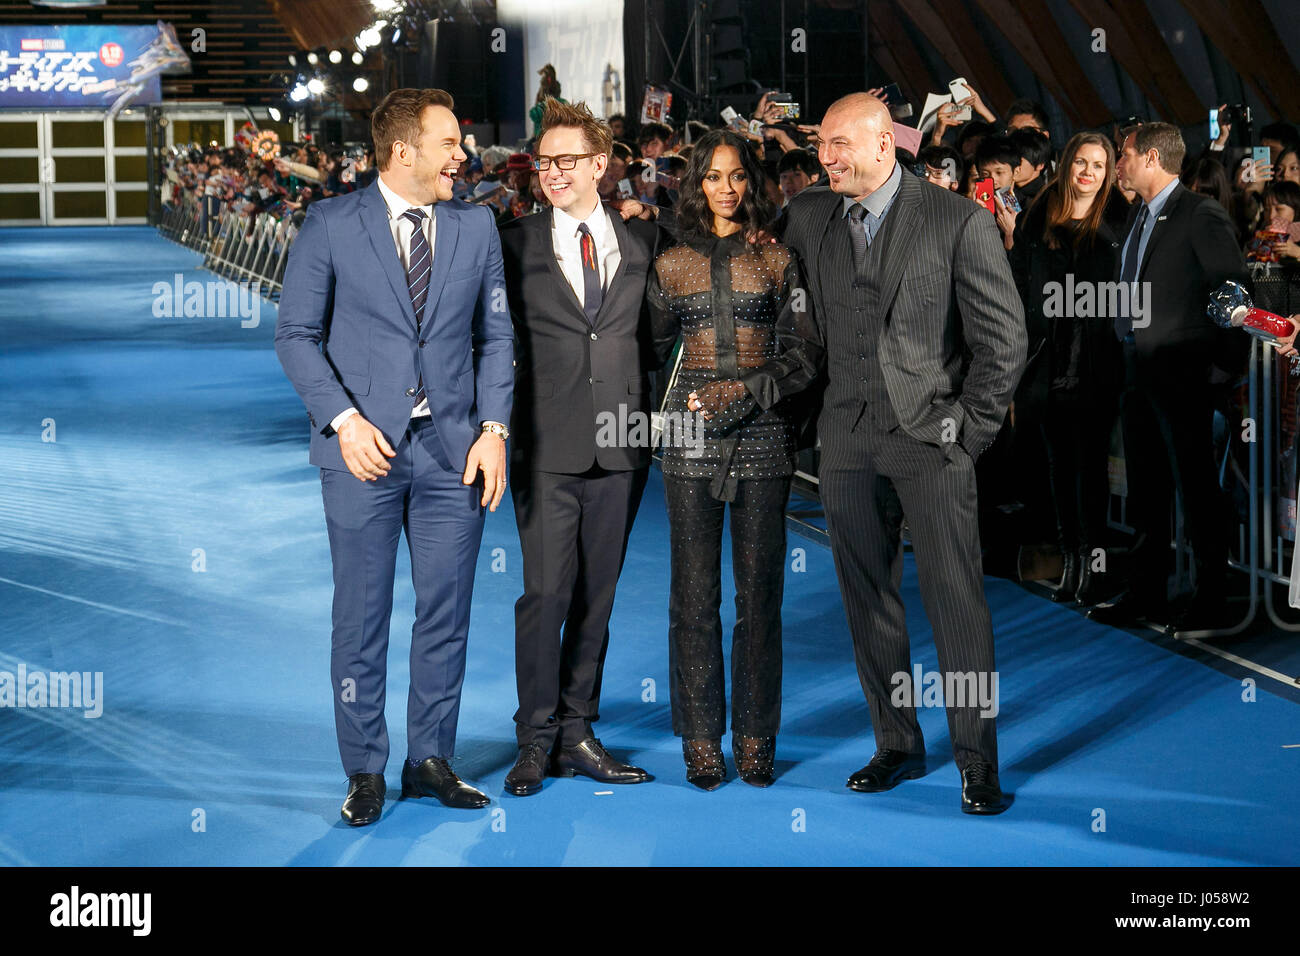 Tokio, Japan. 10. April 2017. (L, R) Schauspieler Chris Pratt, Regisseur James Gunn, Schauspielerin Zoe Saldana Stockbild